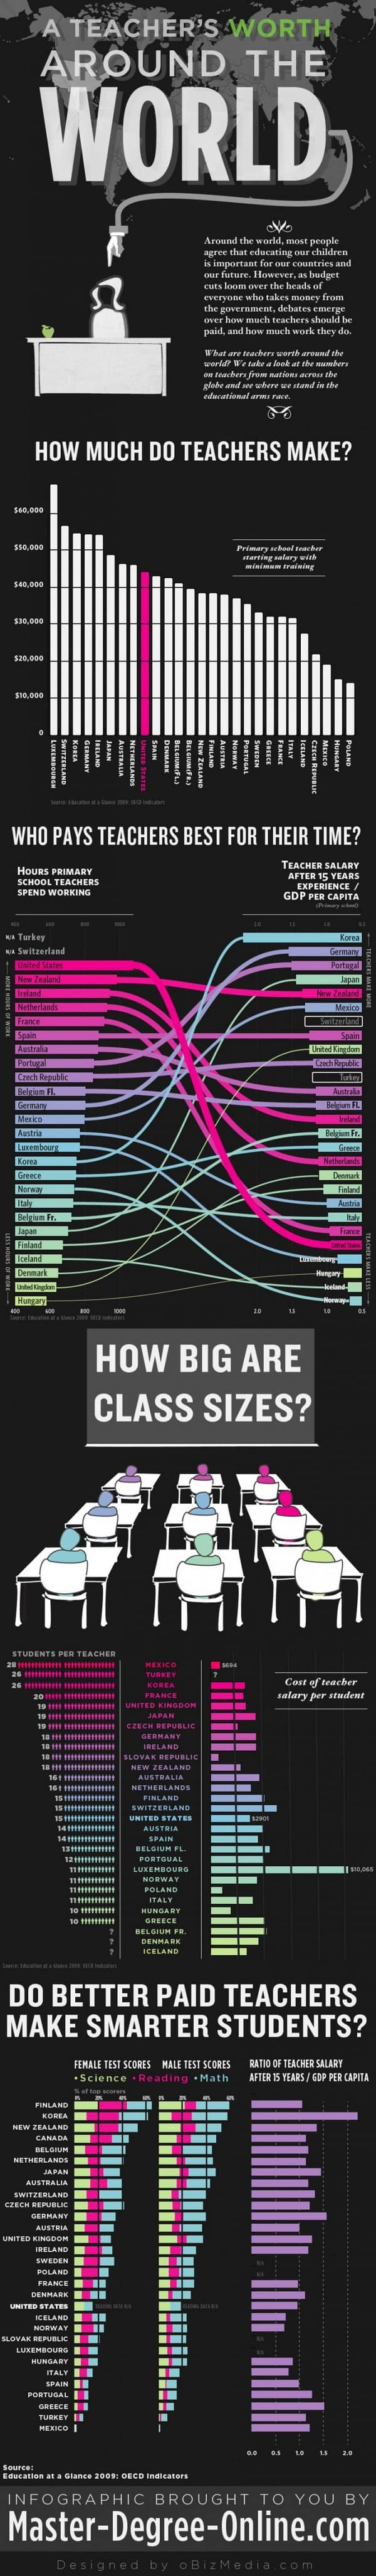 Infographic A Teachers Worth Around the World